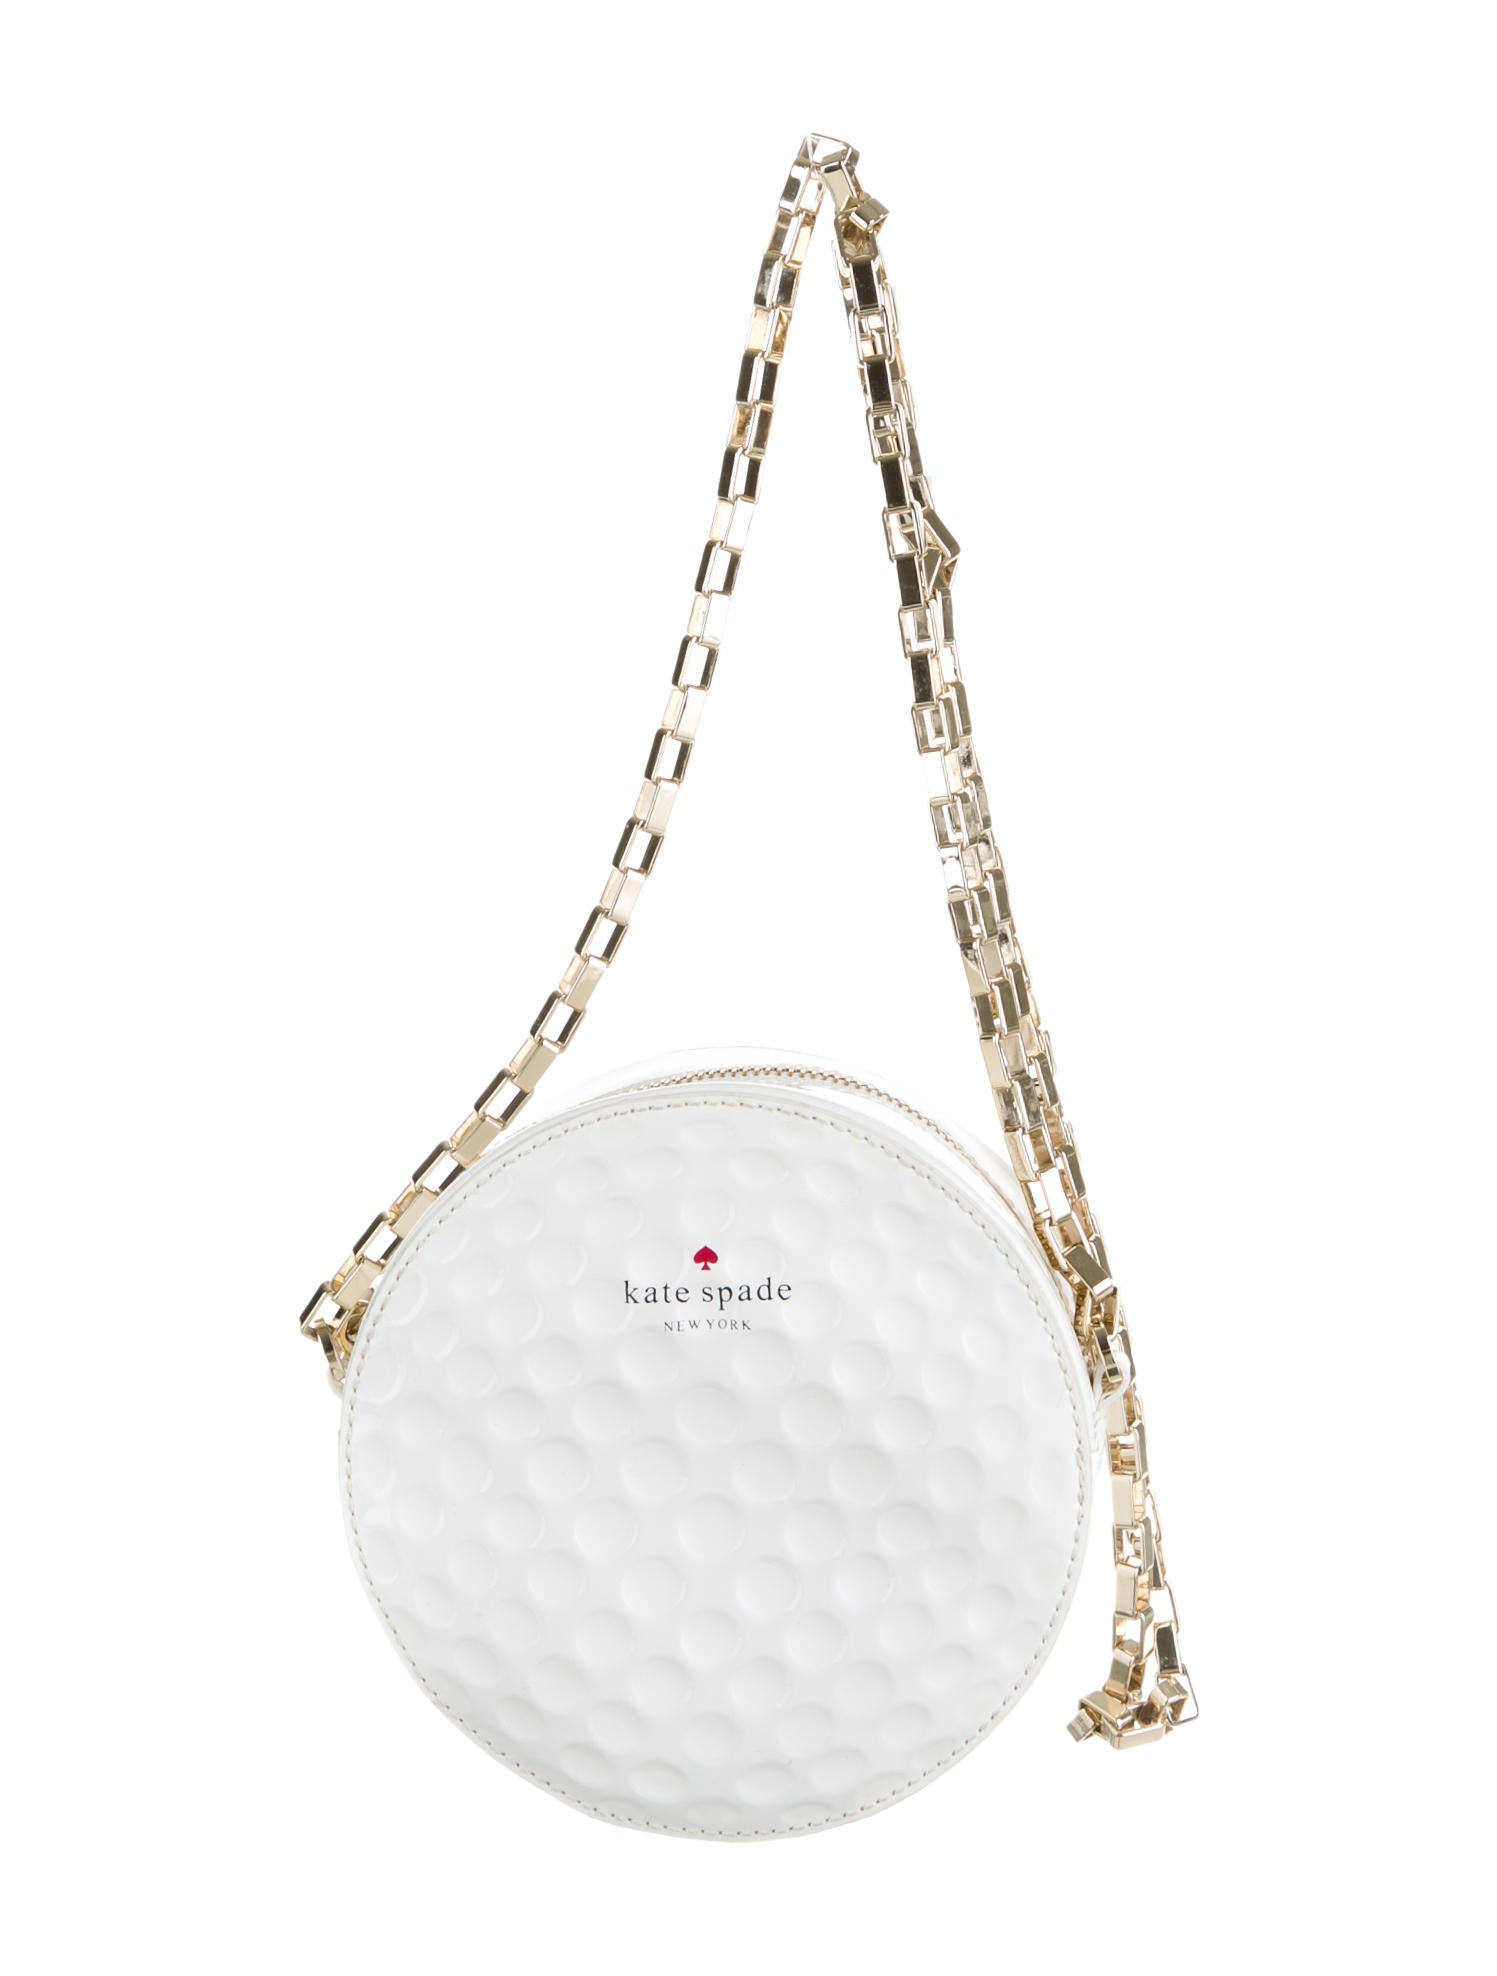 Kate Spade on Par Golf Ball Long Pendant Necklace - eBay ($184.99)